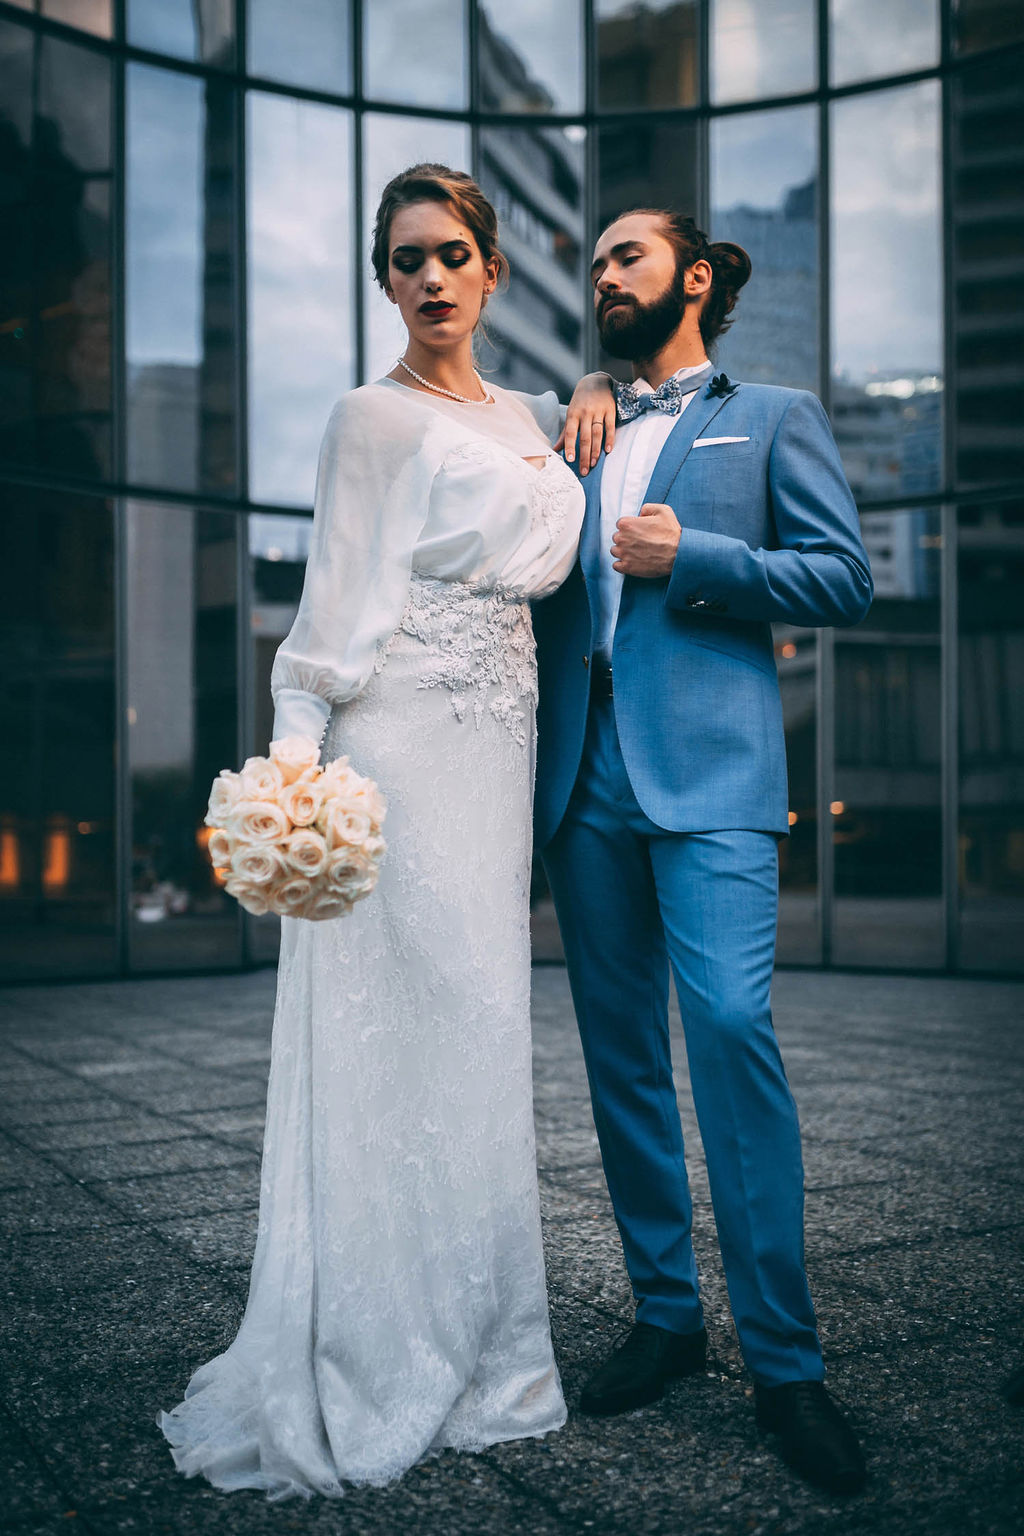 3_2_chic_urbain_couple_4_looks_sidneyonthemoon_photographe_chrisvonmartial_robe_mariee_costume_paris_wedding_web.jpg